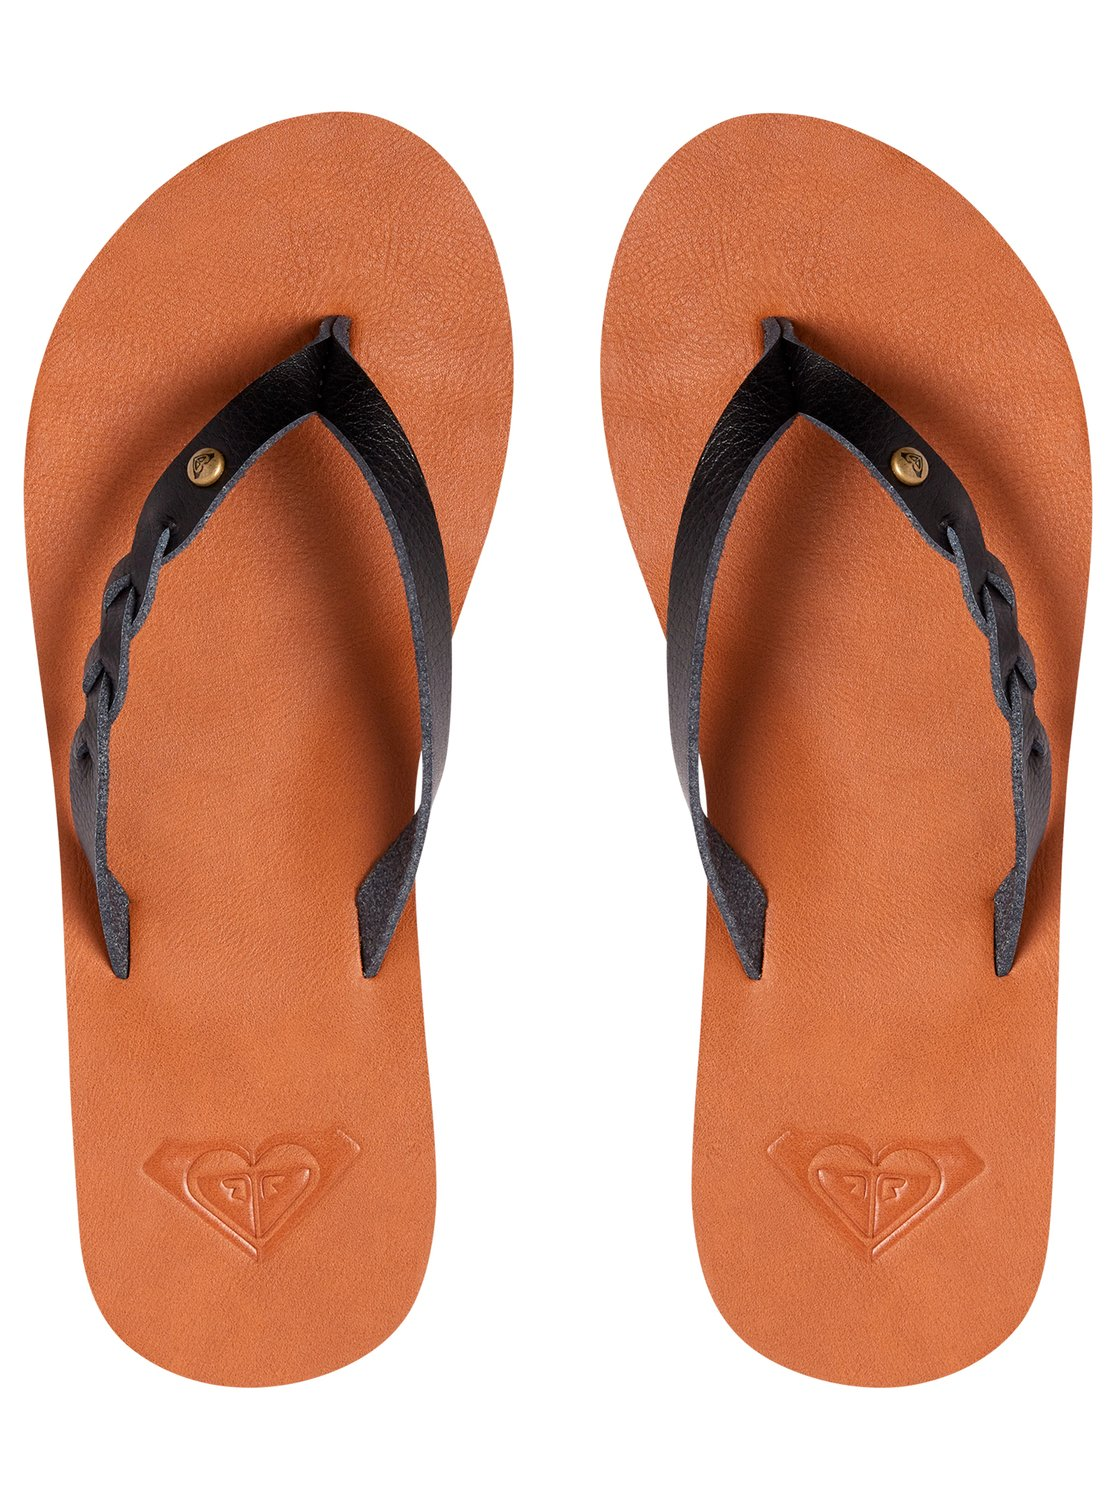 Liza Flip Flops Arjl200667 Roxy Tendencies Sandals Footbed 2 Strap Brown 41 3 Black